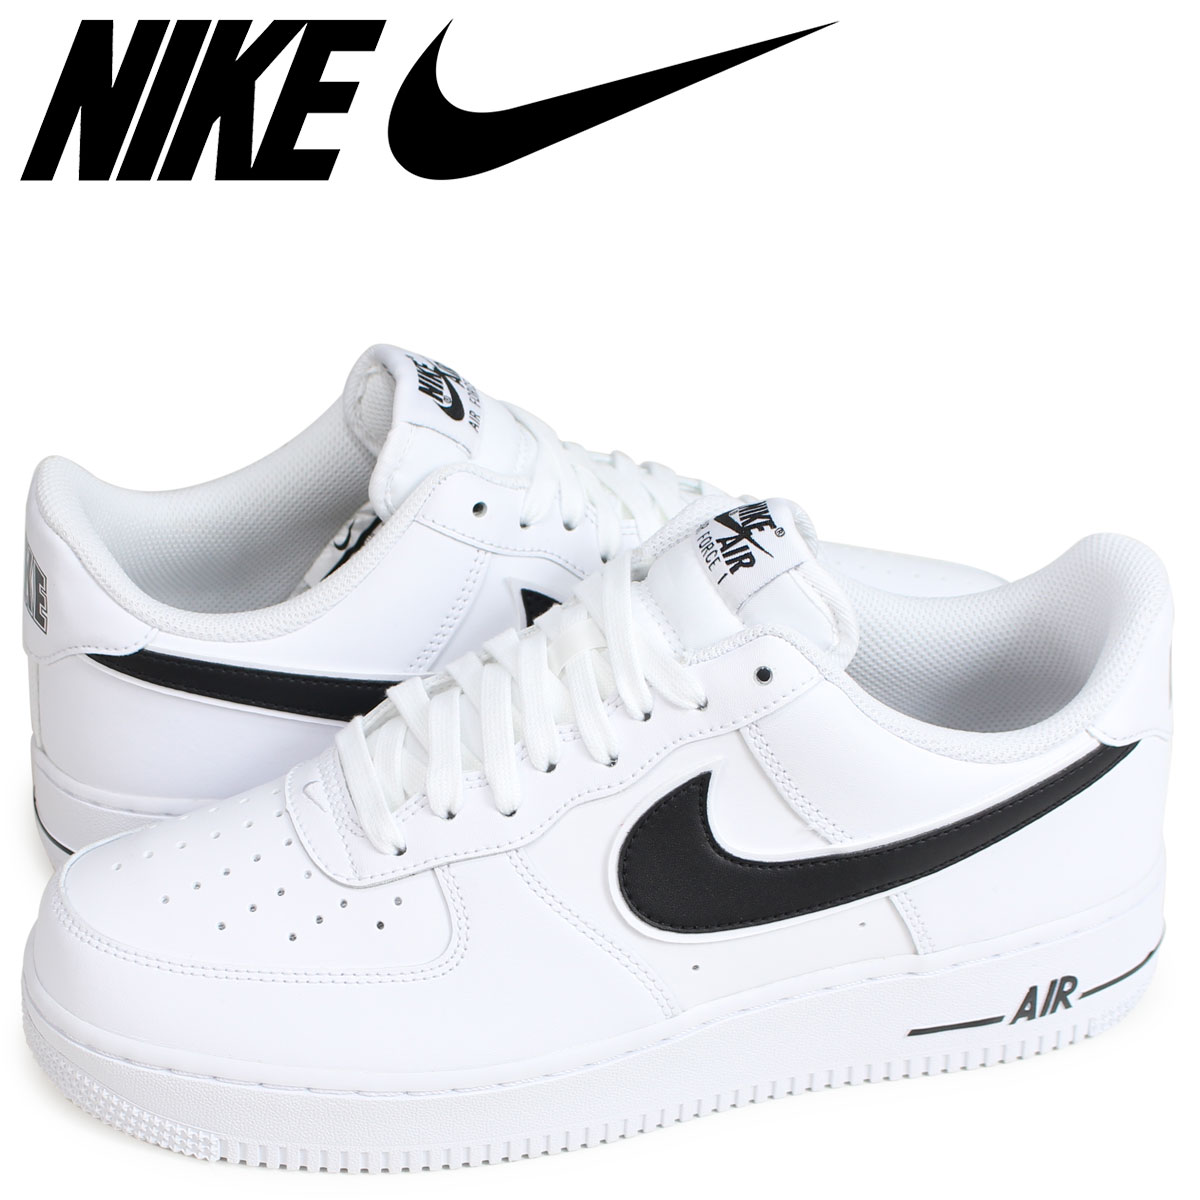 watch d35f0 121b0 NIKE AIR FORCE 1 07 3 Nike air force 1 sneakers men white AO2423-101 ...